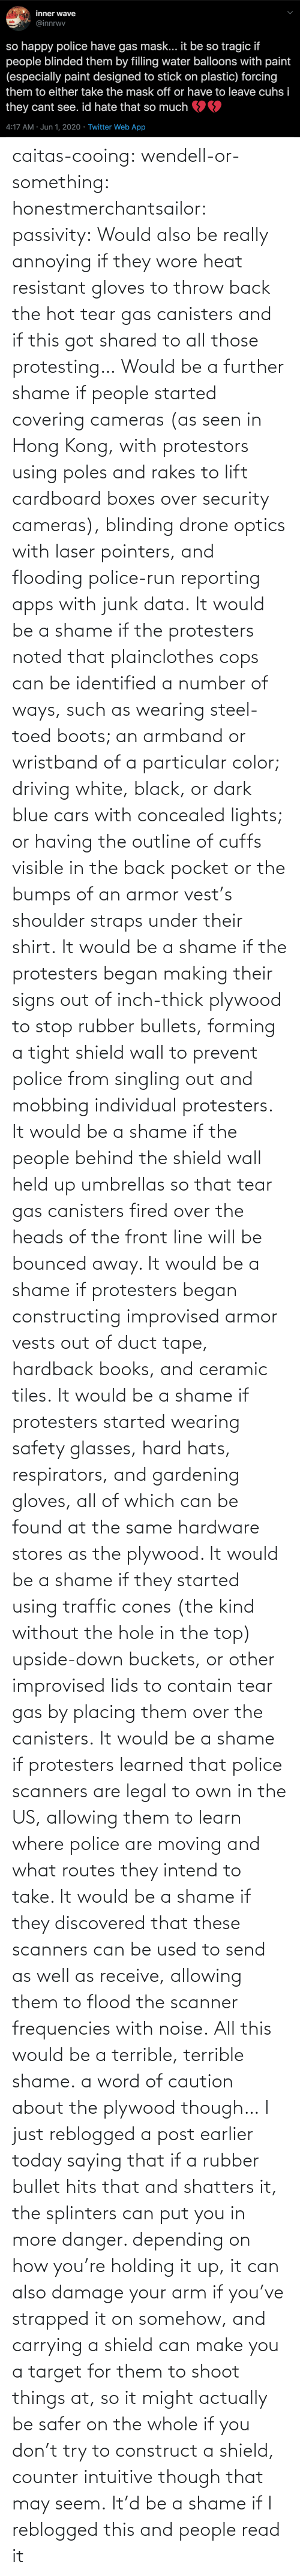 Hits: caitas-cooing:  wendell-or-something: honestmerchantsailor:  passivity: Would also be really annoying if they wore heat resistant gloves to throw back the hot tear gas canisters and if this got shared to all those protesting… Would be a further shame if people started covering cameras (as seen in Hong Kong, with protestors using poles and rakes to lift cardboard boxes over security cameras), blinding drone optics with laser pointers, and flooding police-run reporting apps with junk data. It would be a shame if the protesters noted that plainclothes cops can be identified a number of ways, such as wearing steel-toed boots; an armband or wristband of a particular color; driving white, black, or dark blue cars with concealed lights; or having the outline of cuffs visible in the back pocket or the bumps of an armor vest's shoulder straps under their shirt. It would be a shame if the protesters began making their signs out of inch-thick plywood to stop rubber bullets, forming a tight shield wall to prevent police from singling out and mobbing individual protesters. It would be a shame if the people behind the shield wall held up umbrellas so that tear gas canisters fired over the heads of the front line will be bounced away. It would be a shame if protesters began constructing improvised armor vests out of duct tape, hardback books, and ceramic tiles. It would be a shame if protesters started wearing safety glasses, hard hats, respirators, and gardening gloves, all of which can be found at the same hardware stores as the plywood. It would be a shame if they started using traffic cones (the kind without the hole in the top) upside-down buckets, or other improvised lids to contain tear gas by placing them over the canisters. It would be a shame if protesters learned that police scanners are legal to own in the US, allowing them to learn where police are moving and what routes they intend to take. It would be a shame if they discovered that these scanners can be used to send as well as receive, allowing them to flood the scanner frequencies with noise. All this would be a terrible, terrible shame.    a word of caution about the plywood though… I just reblogged a post earlier today saying that if a rubber bullet hits that and shatters it, the splinters can put you in more danger. depending on how you're holding it up, it can also damage your arm if you've strapped it on somehow, and carrying a shield can make you a target for them to shoot things at, so it might actually be safer on the whole if you don't try to construct a shield, counter intuitive though that may seem.    It'd be a shame if I reblogged this and people read it